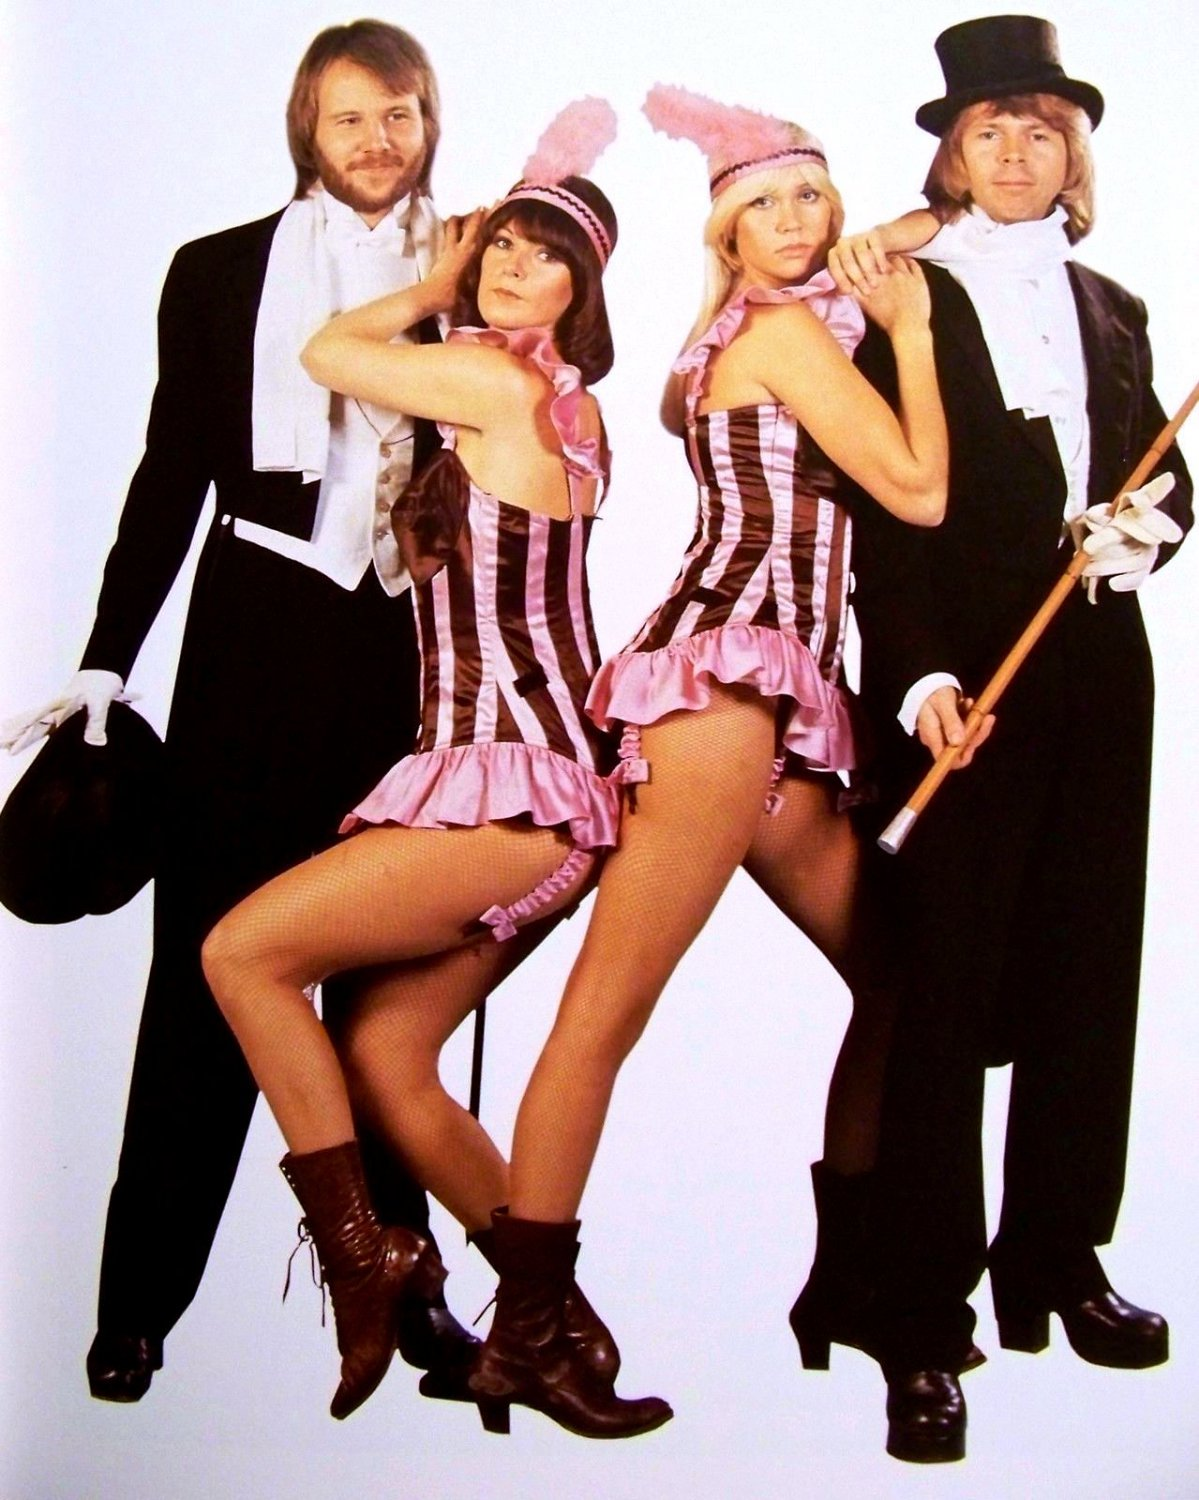 """����"" ABBA LEGENDARY SWEDISH POP MUSIC GROUP - 8X10 PUBLICITY PHOTO (DA-723)"